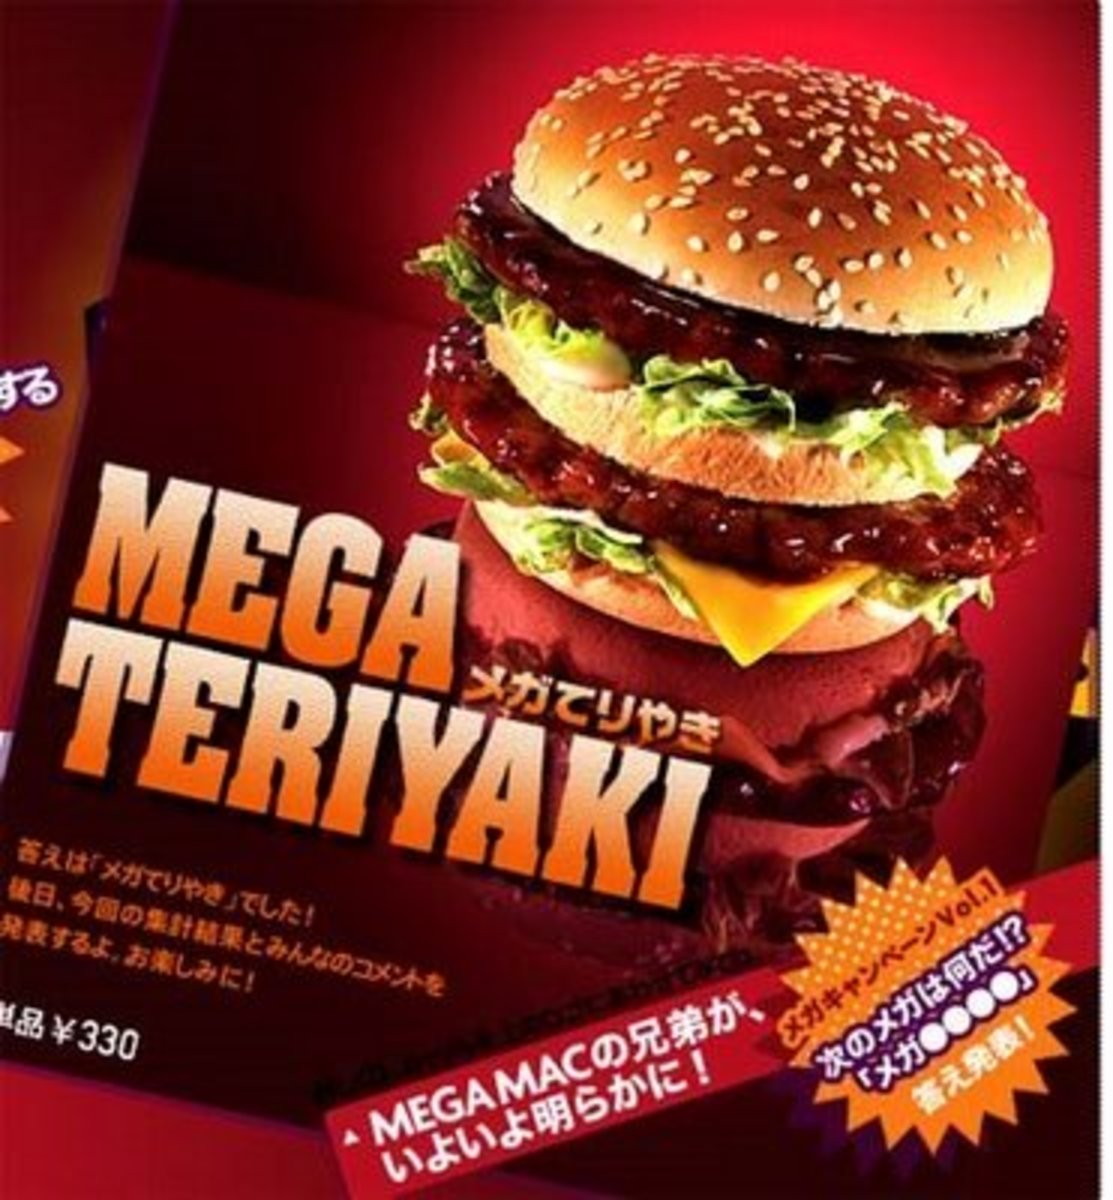 Japanese McDonald's Teriyaki Burger!